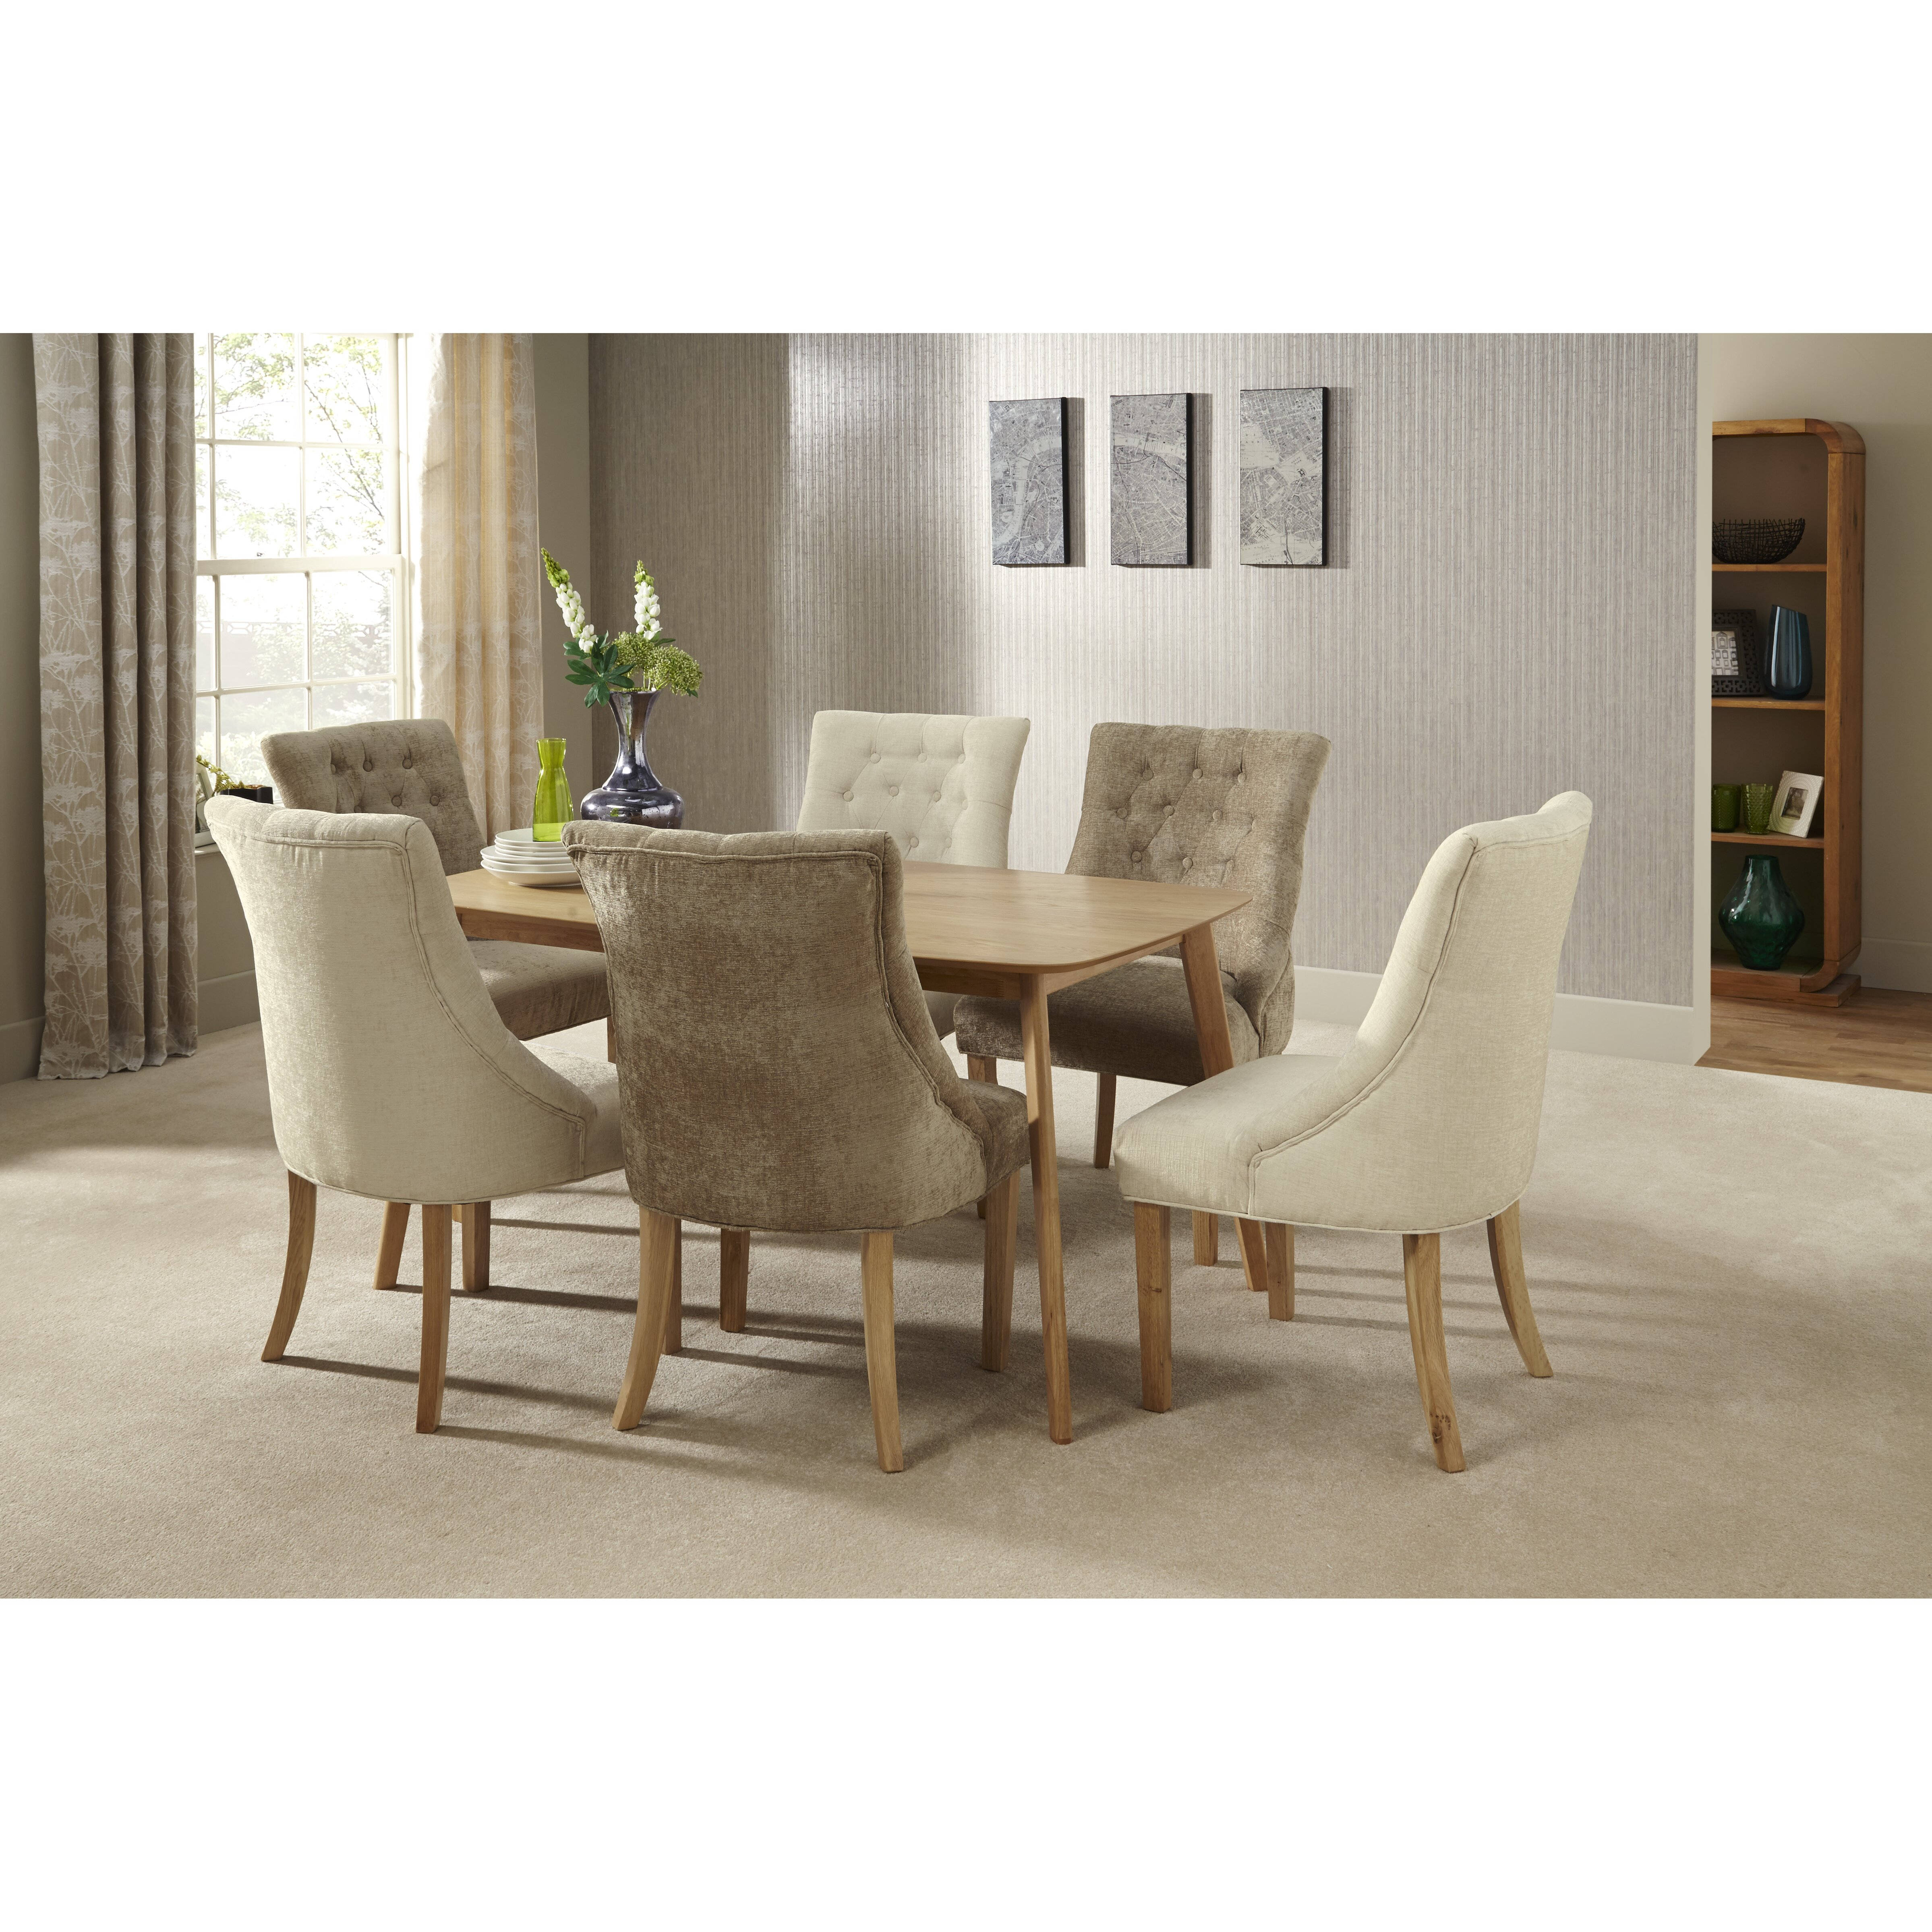 Home Haus Bornholm Extendable Dining Table And 6 Chairs Reviews Wayfair Uk